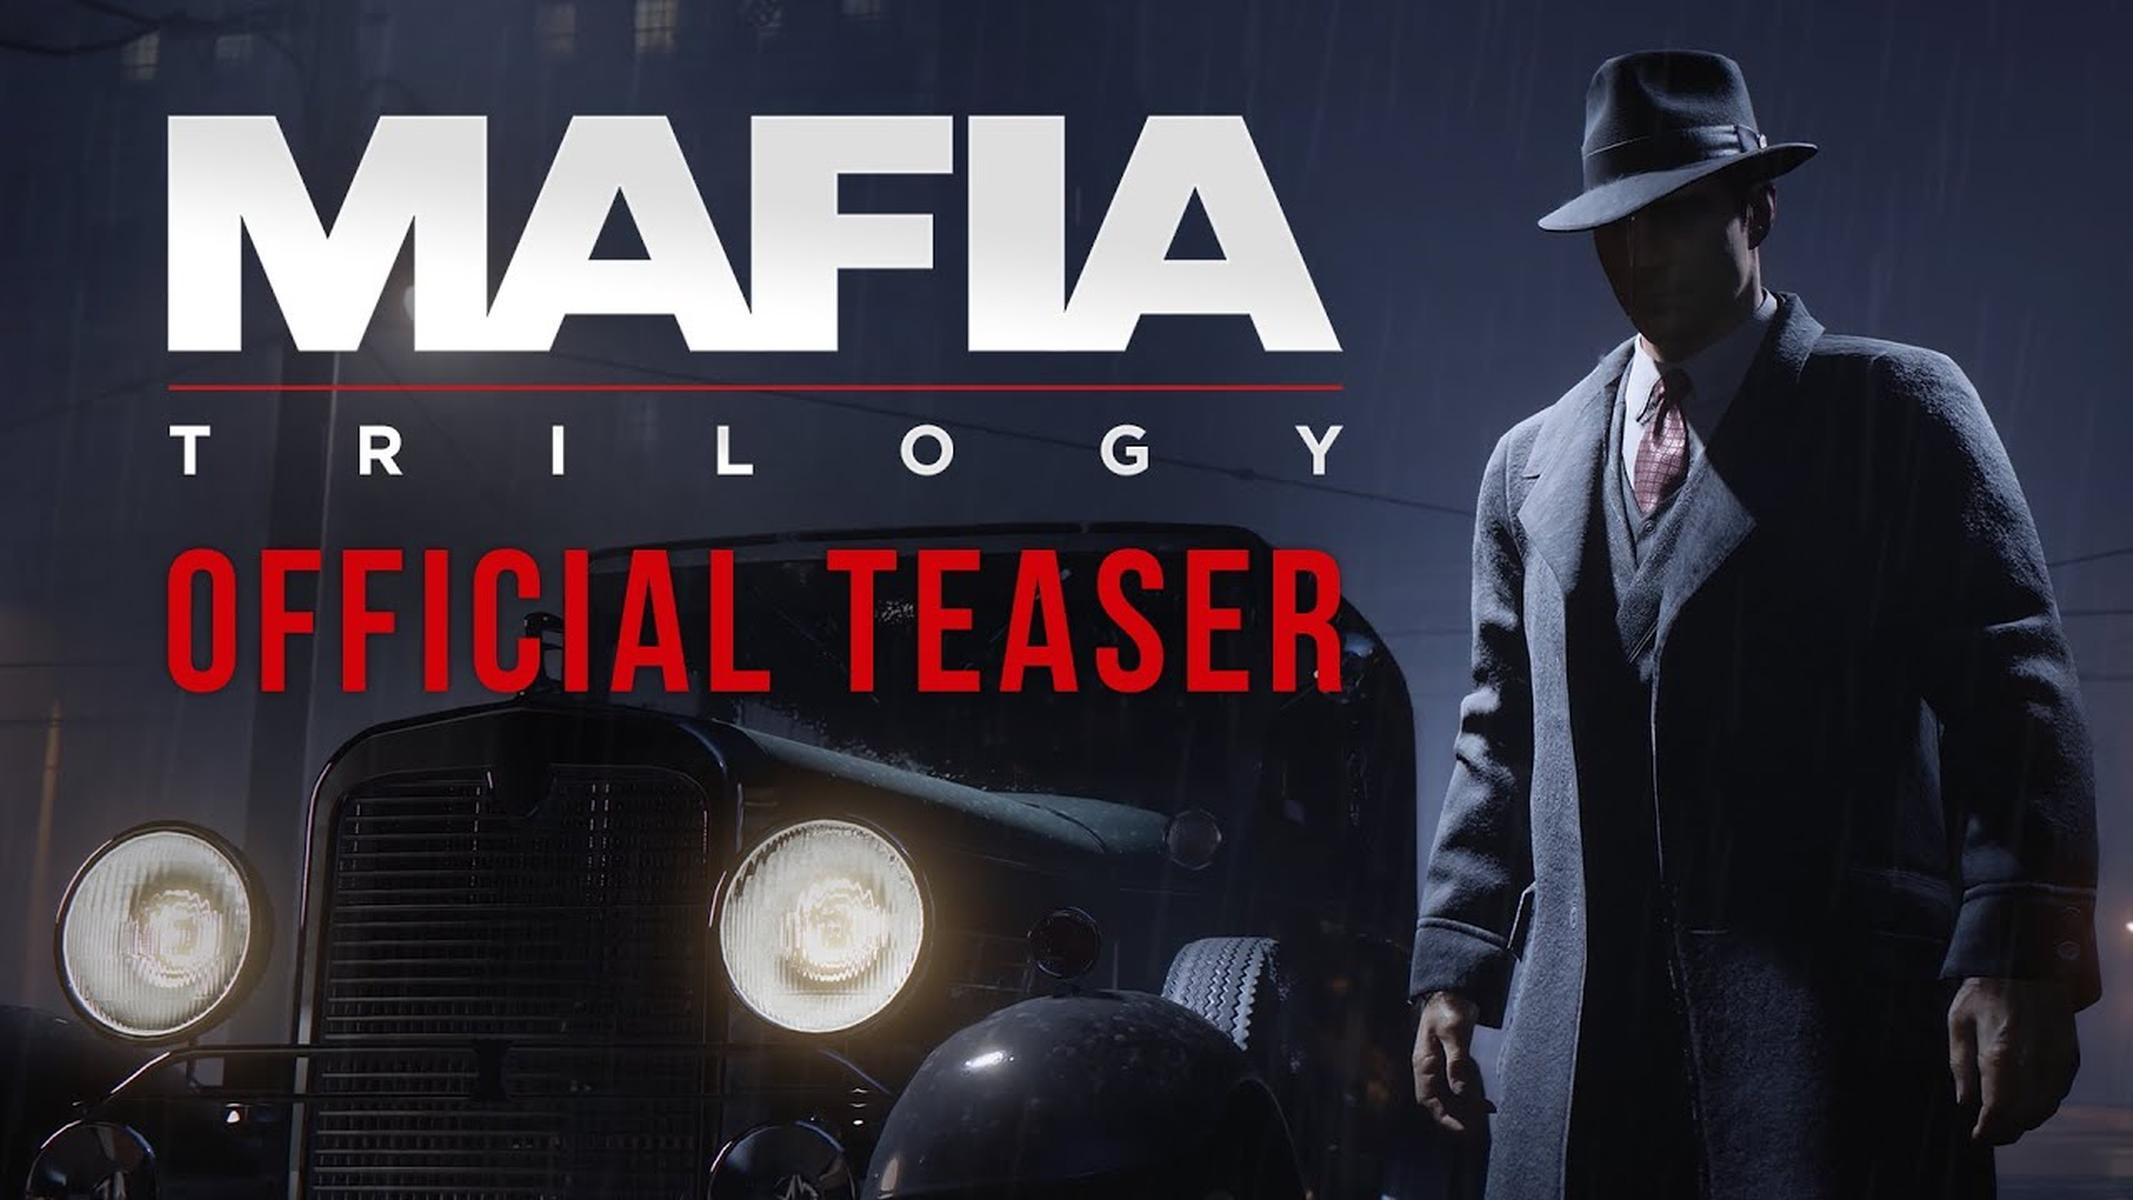 Mafia Trilogy Remaster Trailer